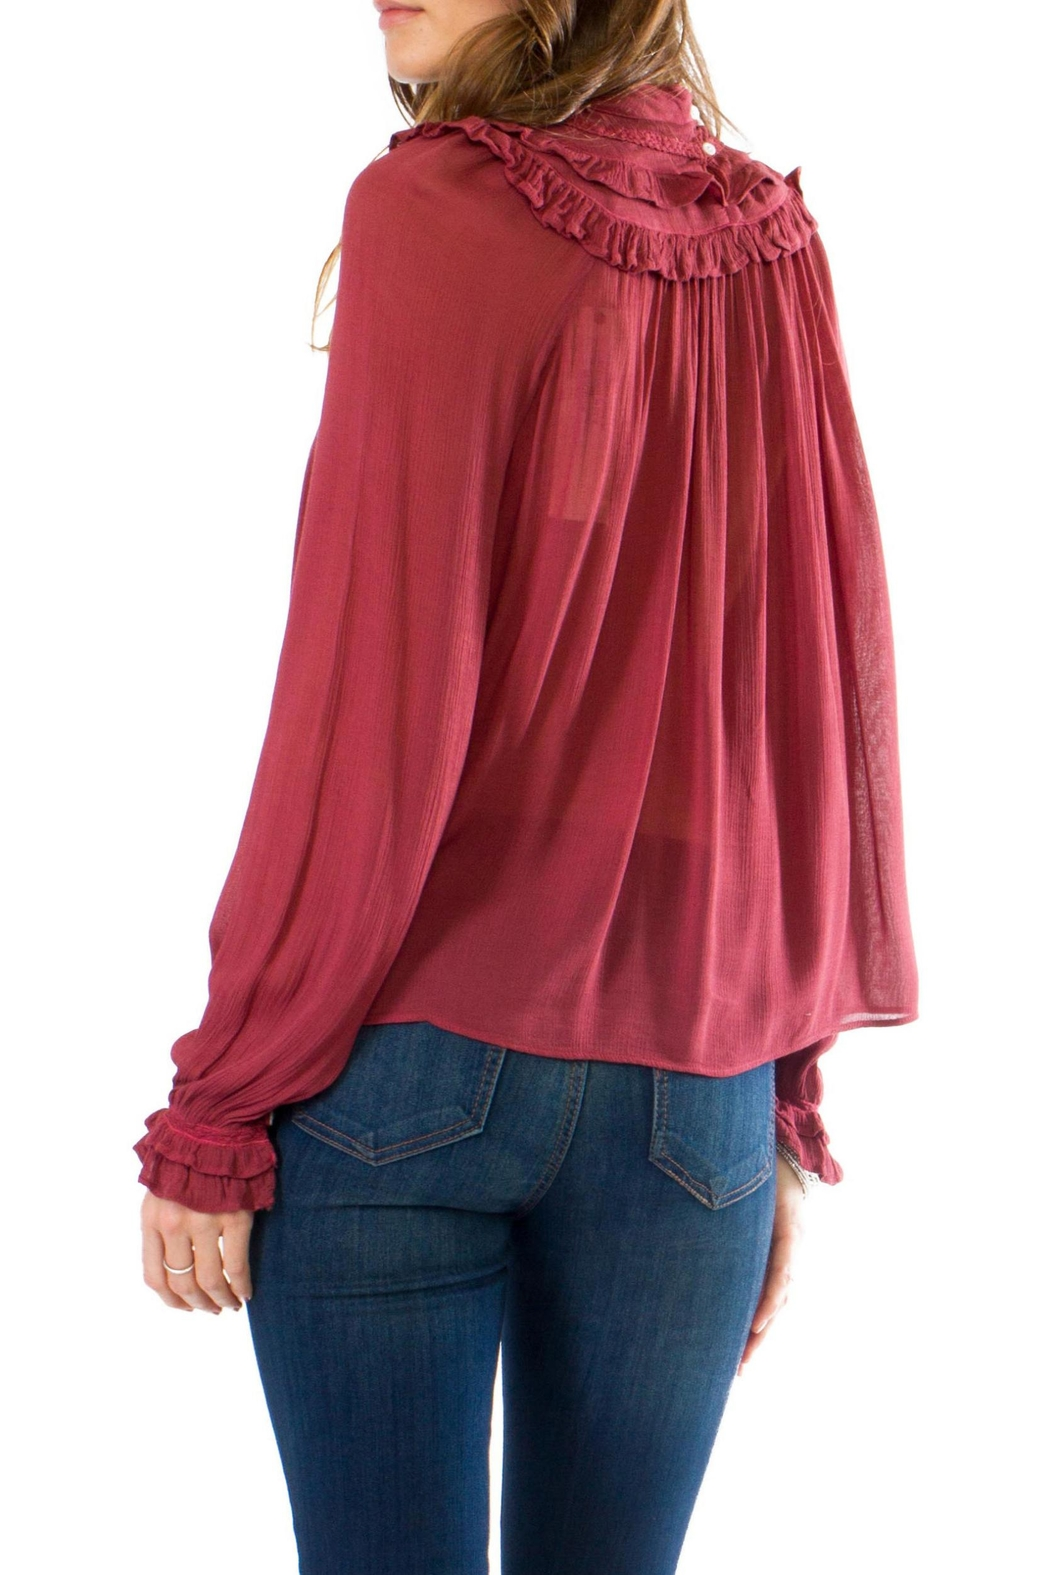 Anama Victorian High-Neck Blouse - Front Full Image